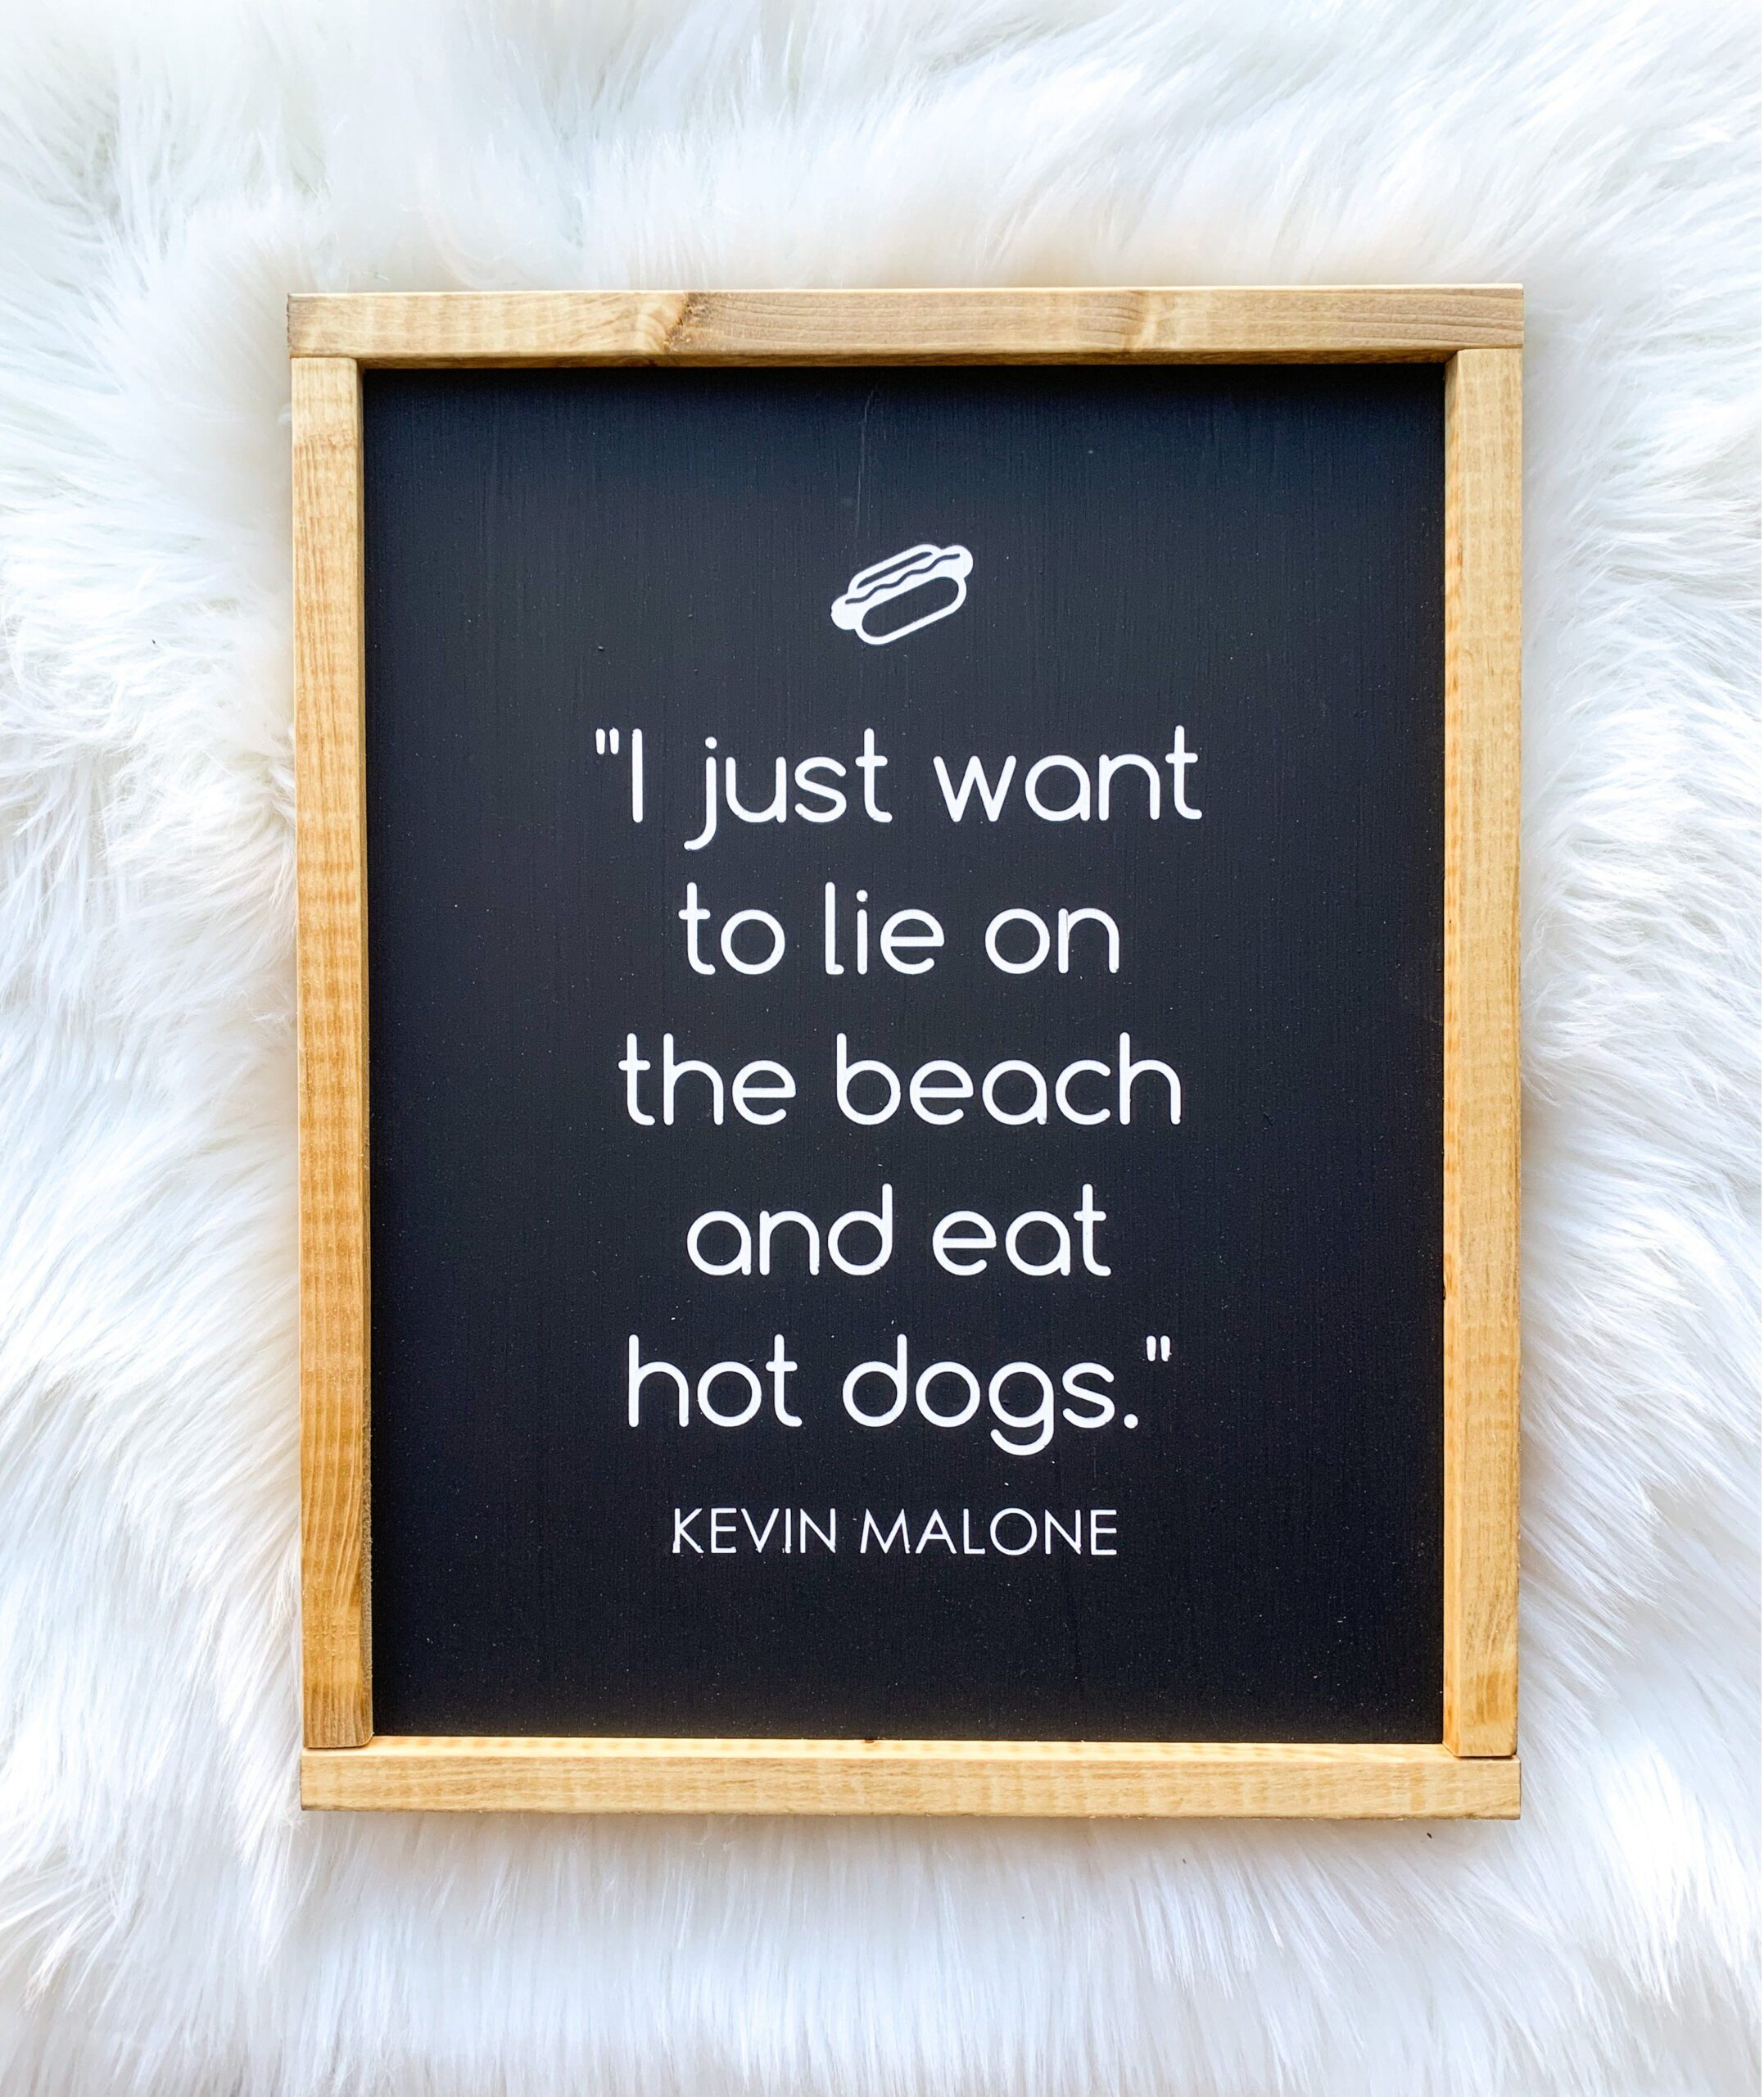 You are currently viewing Kevin Malone Hot Dog Quote Wood Sign – Black background